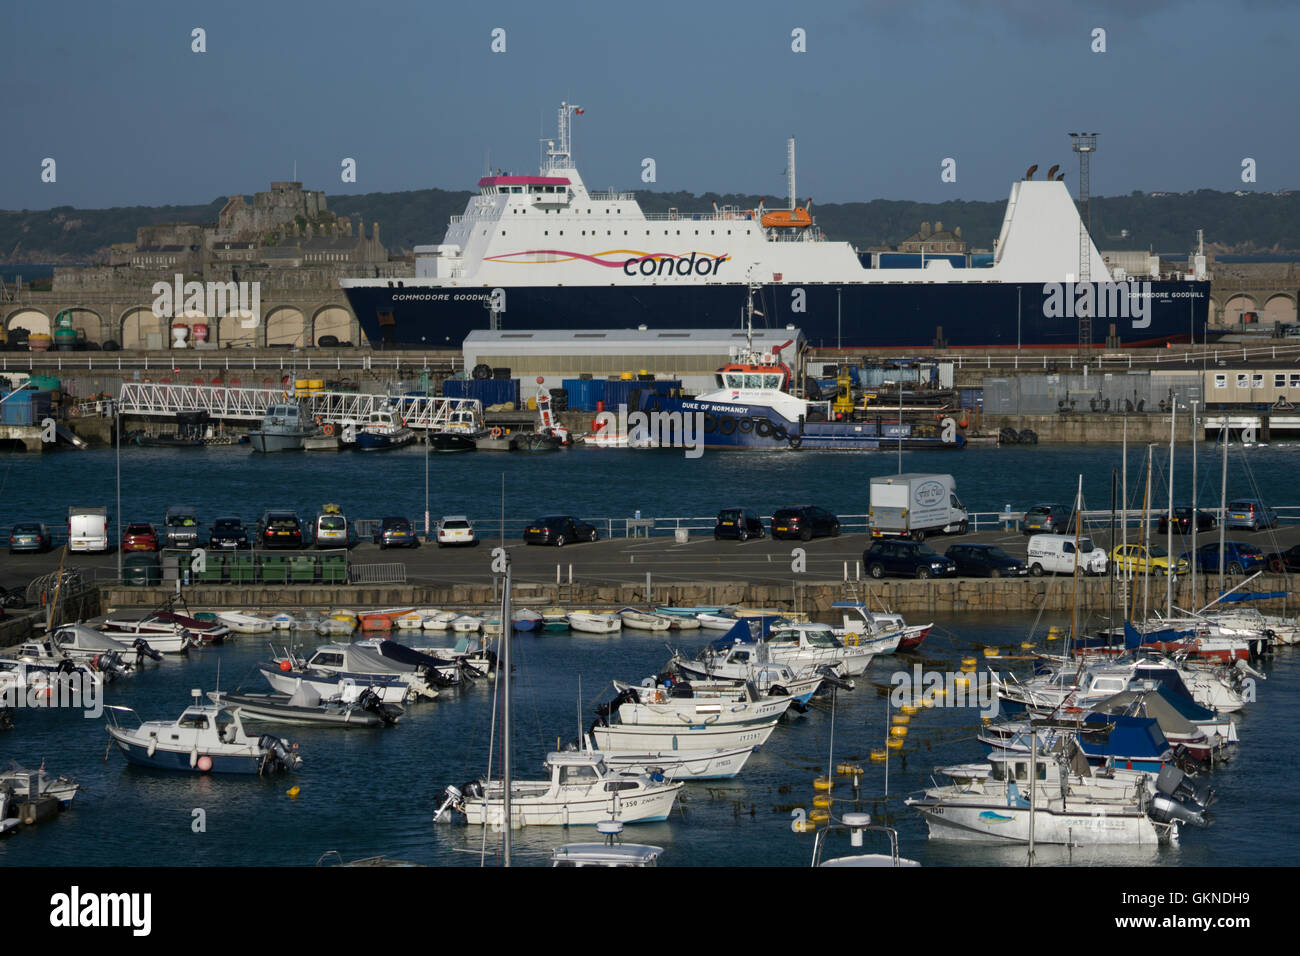 Condor Ferries Freight & Passenger vessel,Commodore Goodwill,berthed in St.Helier harbour,Jersey,Channel Islands, - Stock Image